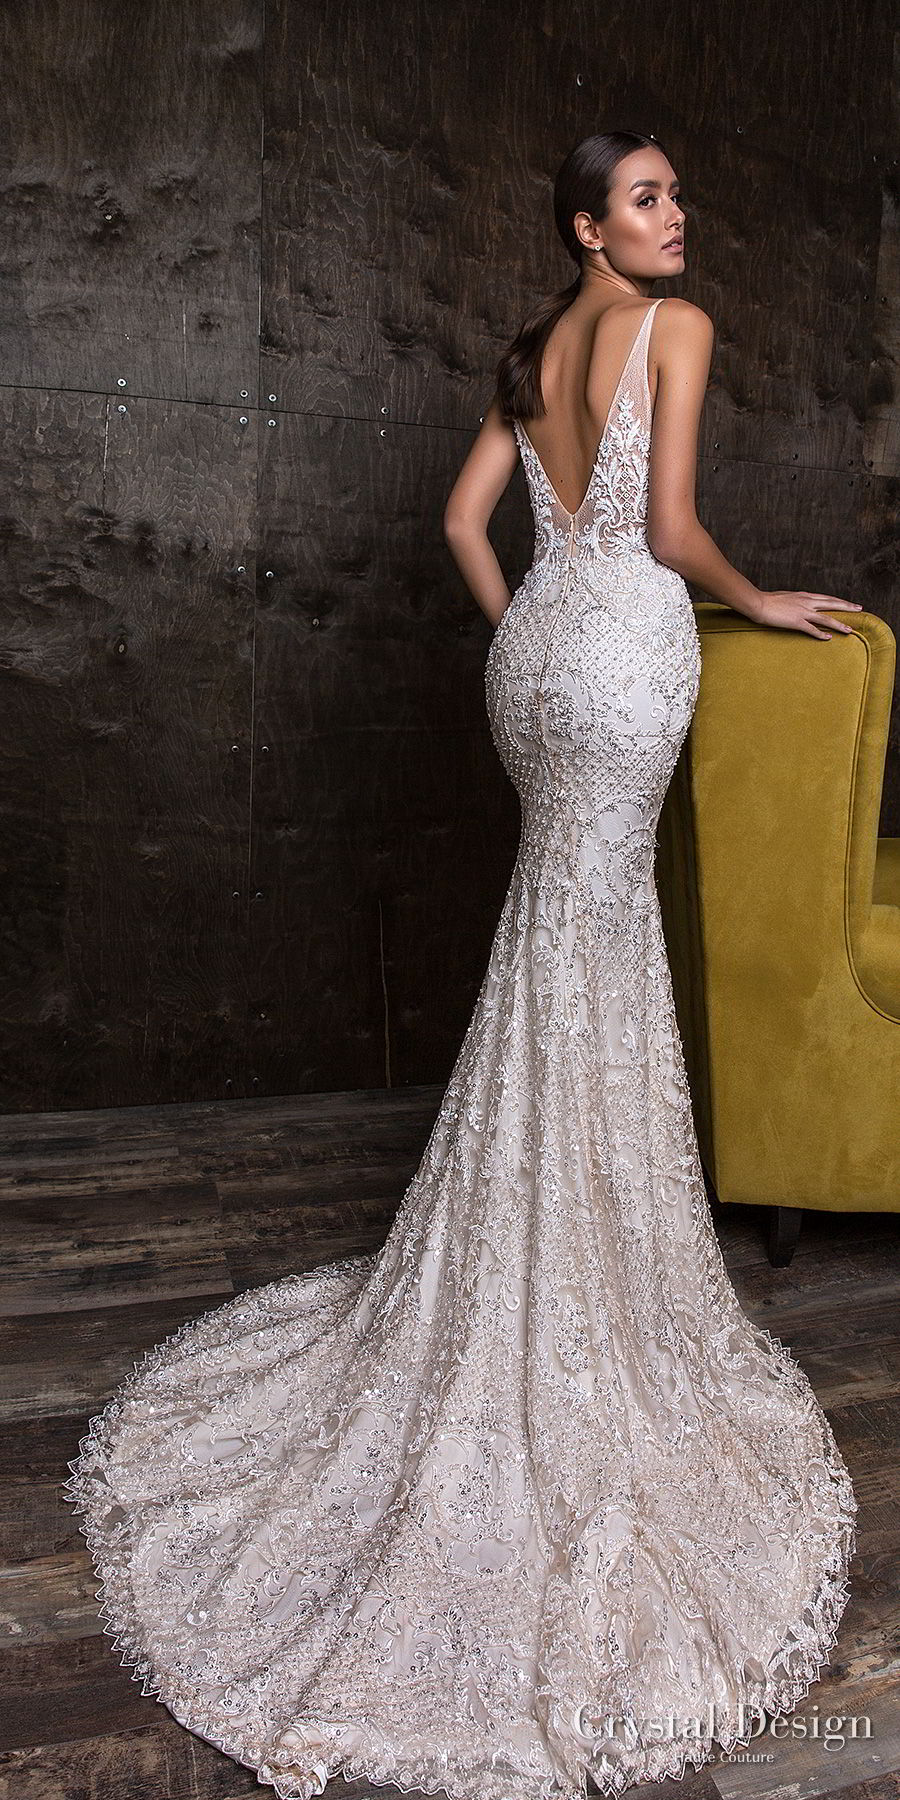 crystal design 2018 sleeveless deep v neck full embellishment elegant sheath fit and flare wedding dress open v back medium train (esben) bv